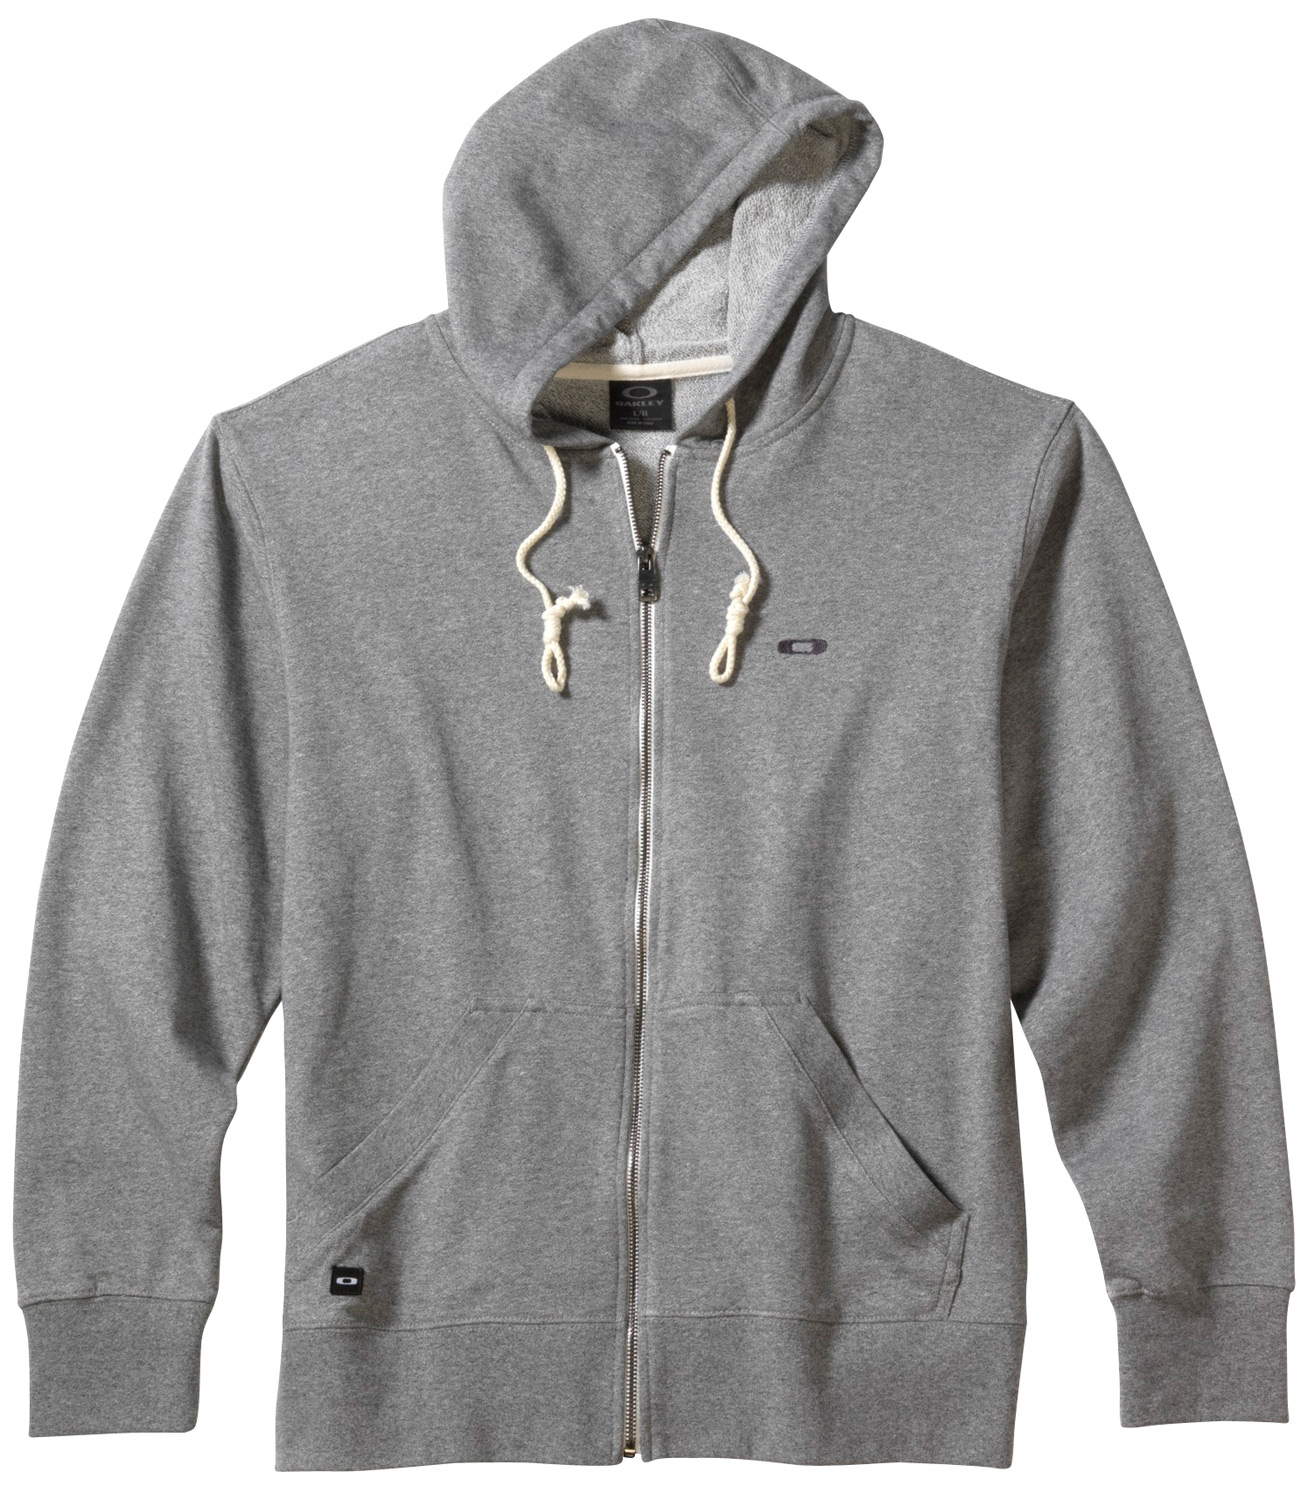 Pullover heathered French terry crew with front flat woven label and front logo embroidery.Key Features of the Oakley Pennycross 2.0 Hoodie: * Fit: Fashion * 86% Cotton, 14% Polyester - $35.95